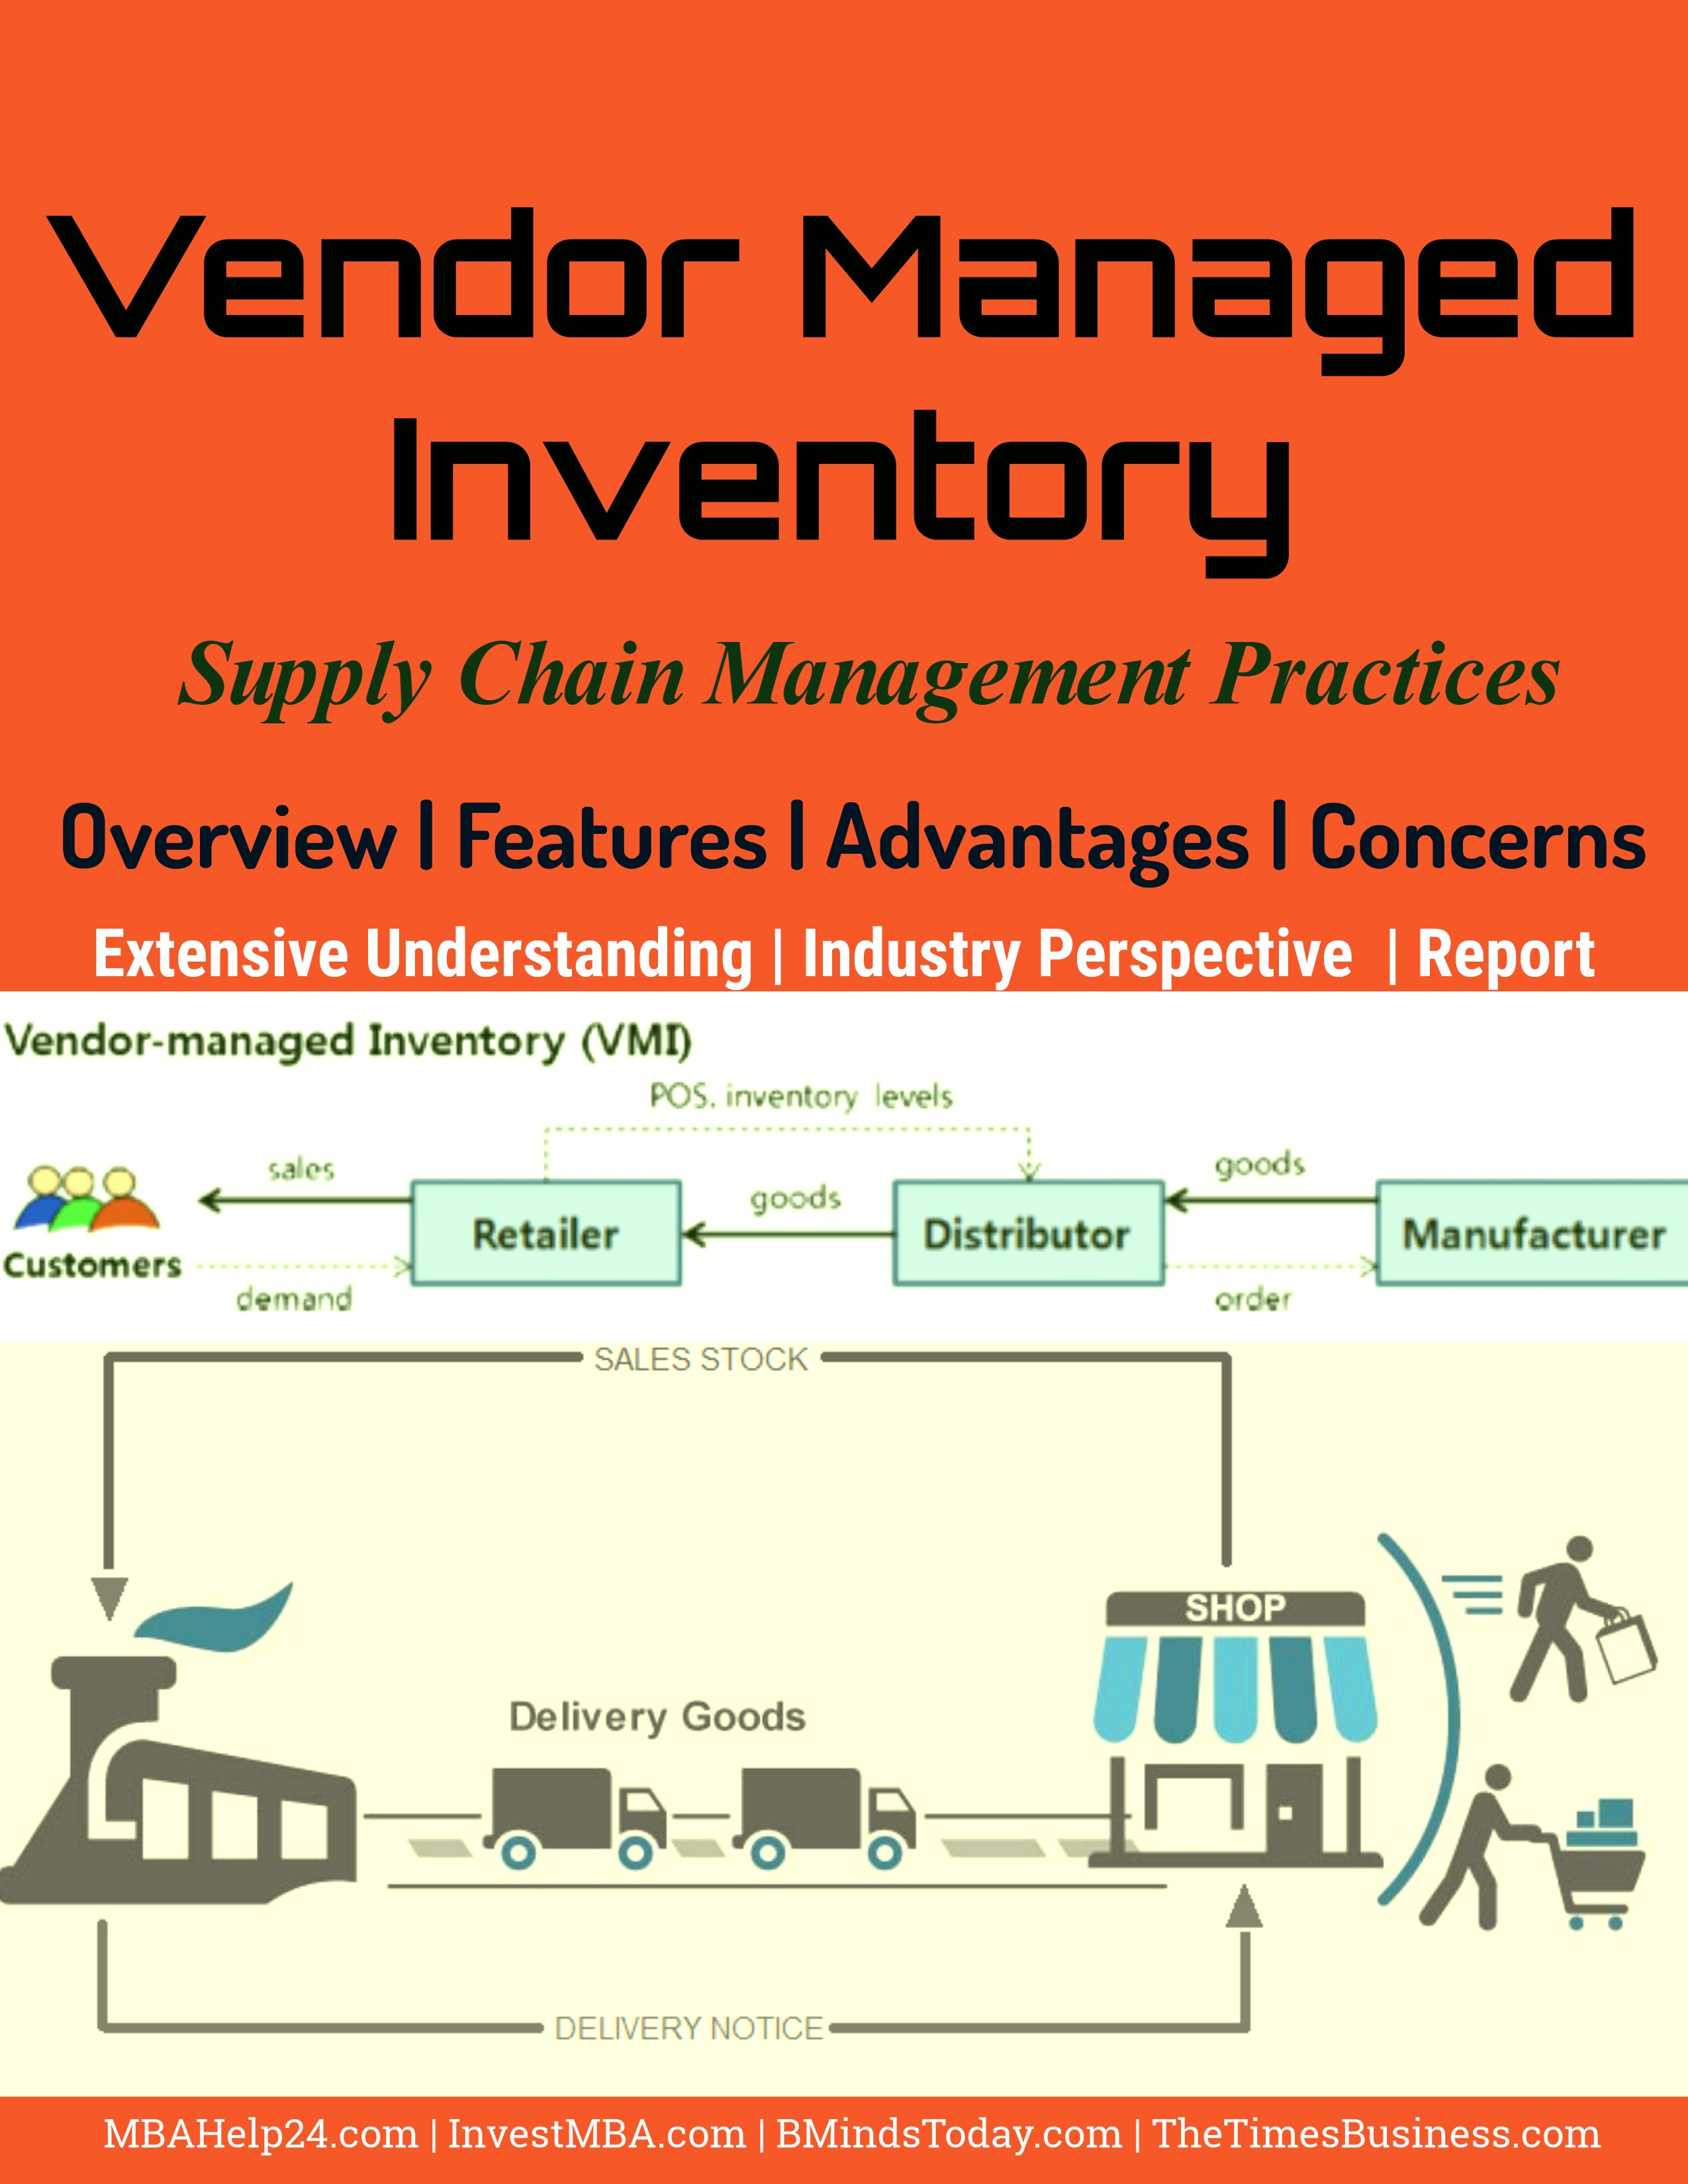 Vendor Managed Inventory- Overview, Features, Advantages and Concerns Vendor Managed Inventory Vendor Managed Inventory | Overview | Features | Advantages | Concerns Vendor Managed Inventory Overview Features Advantages and Concerns